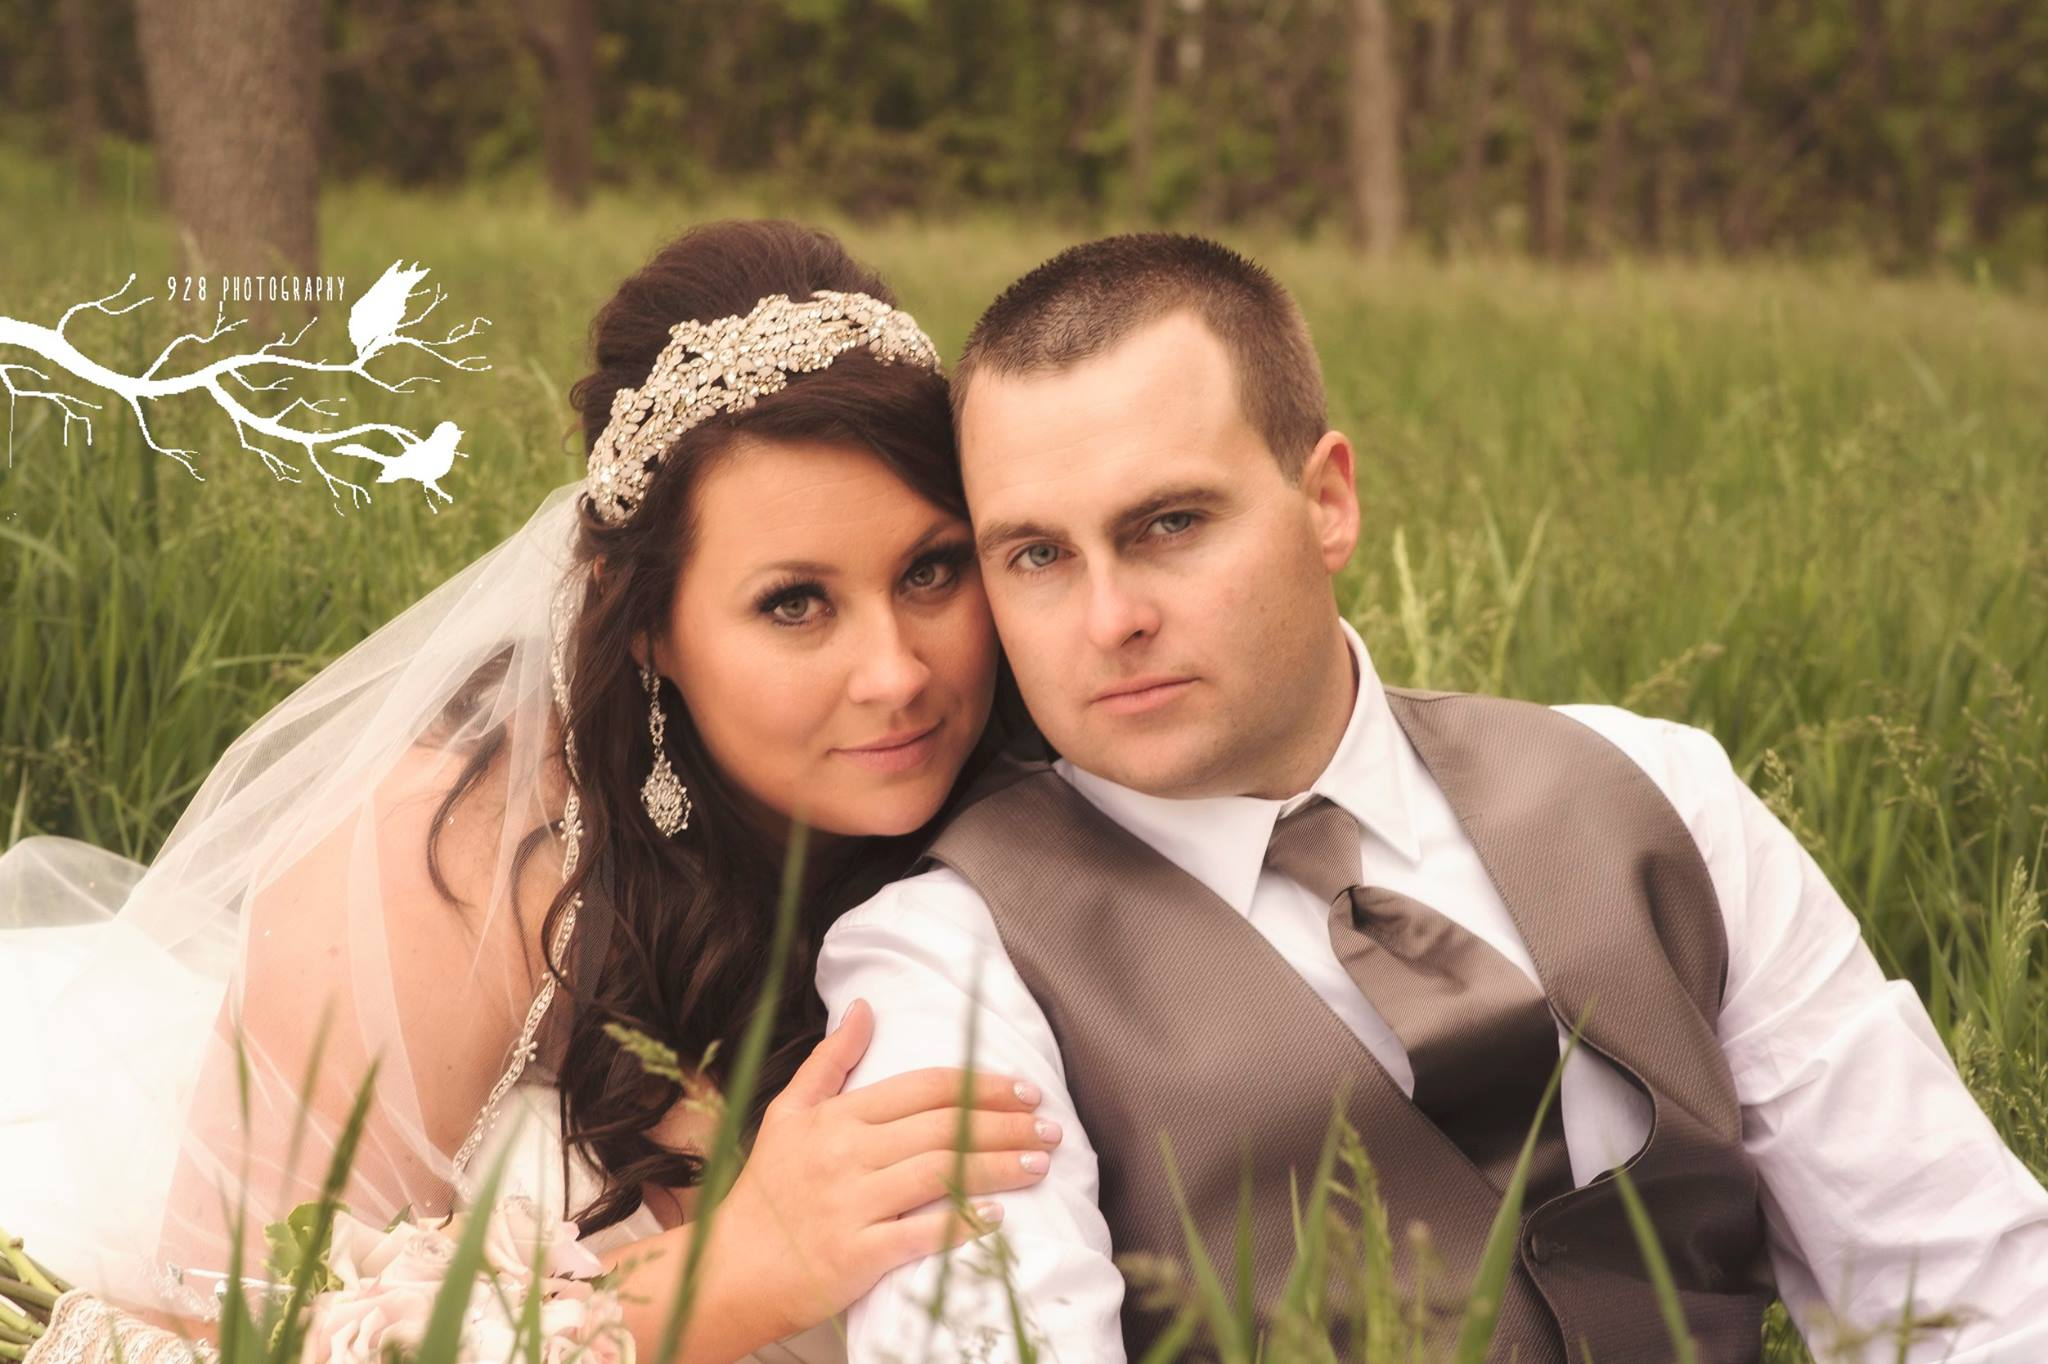 A Bride and Groom posing on their wedding day